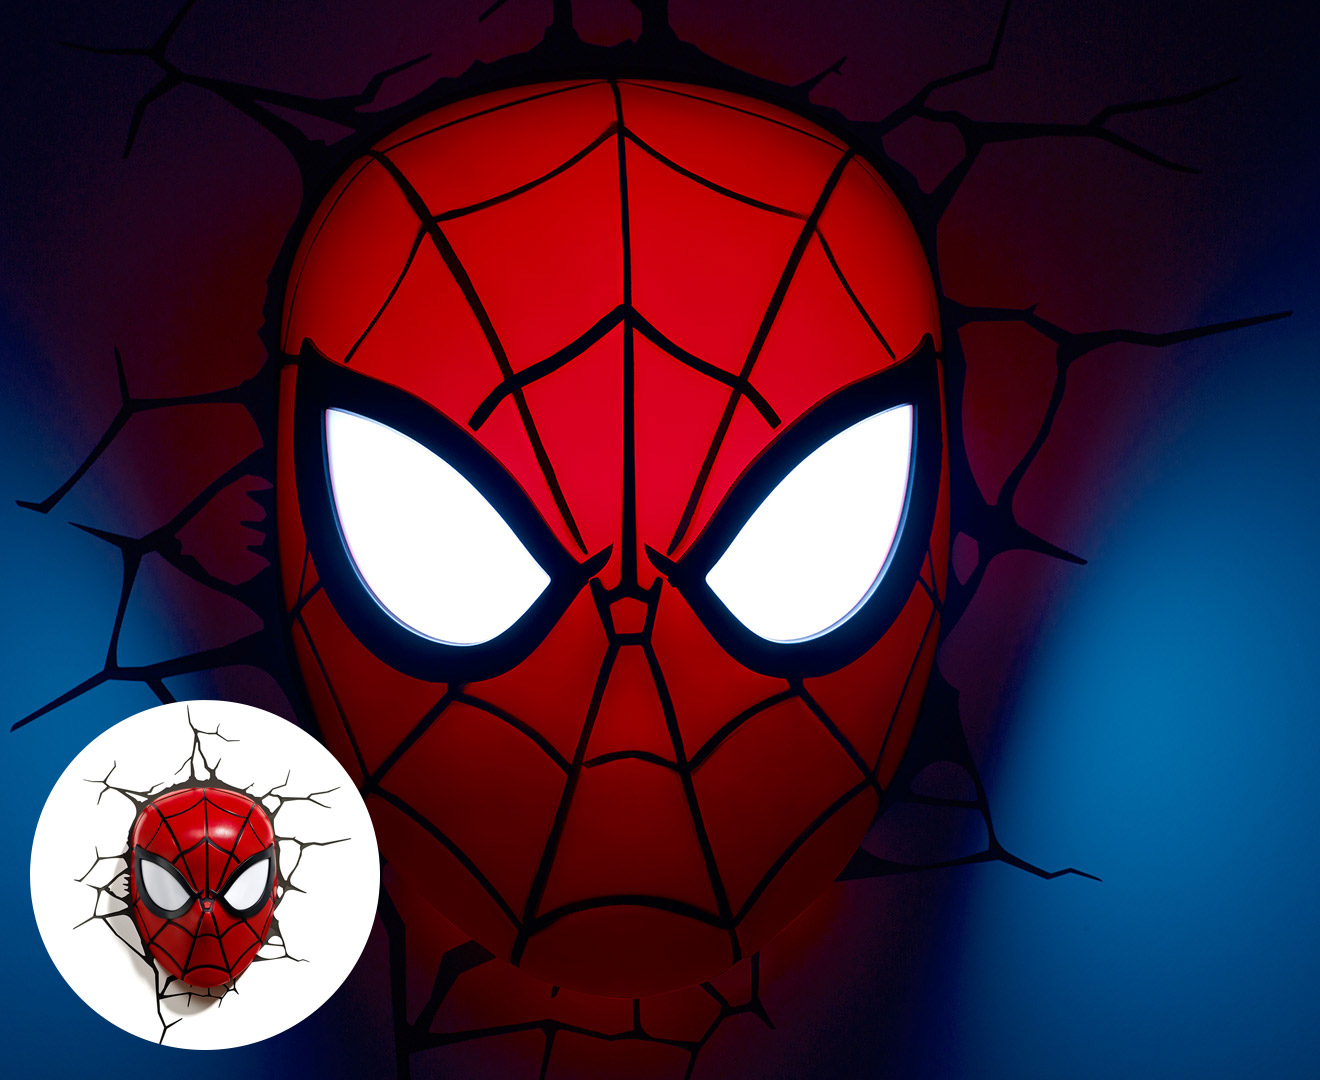 Marvel Wall Lights Spiderman : 3D Marvel Spiderman Mask Wall Light - Red eBay